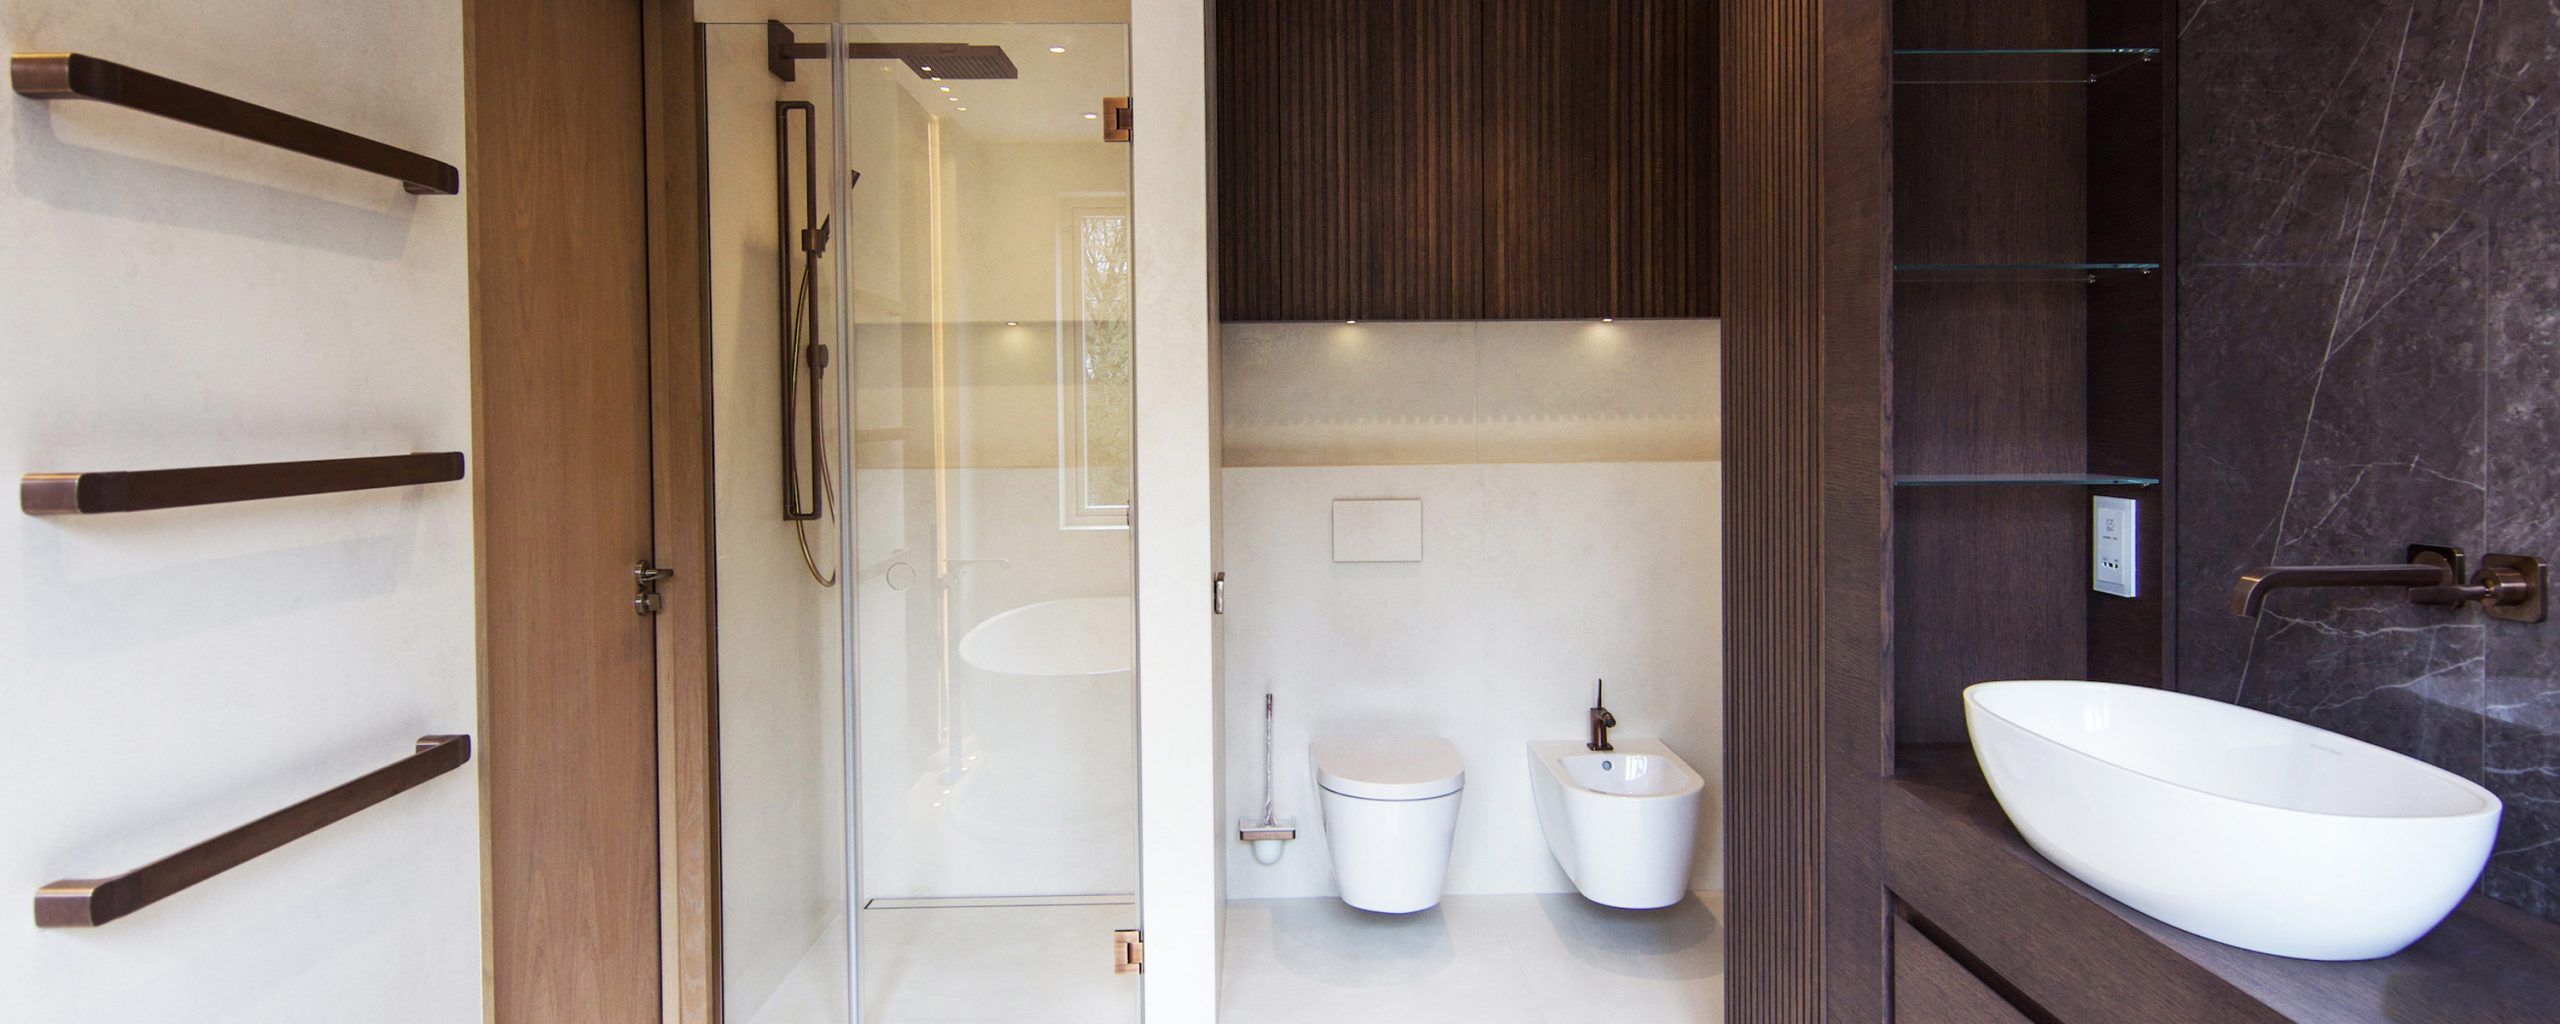 Bathroom Trends That Will Never Go Out Of Style